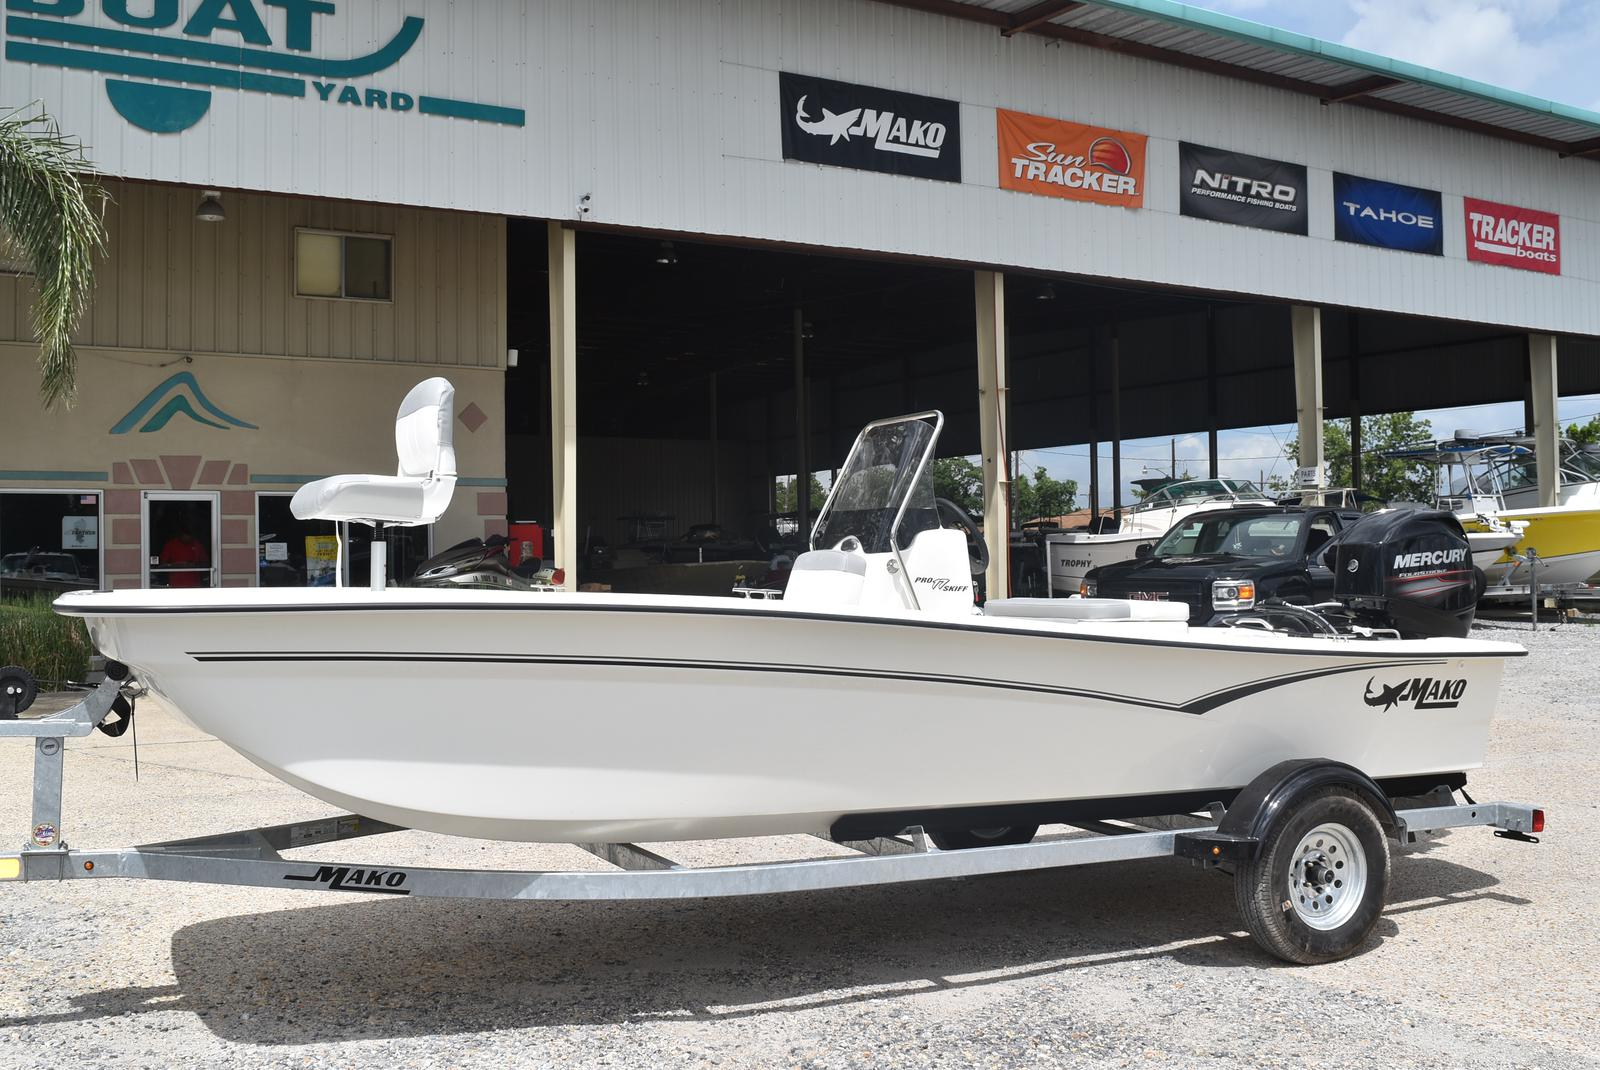 2020 Mako boat for sale, model of the boat is Pro Skiff 17, 75 ELPT & Image # 117 of 702